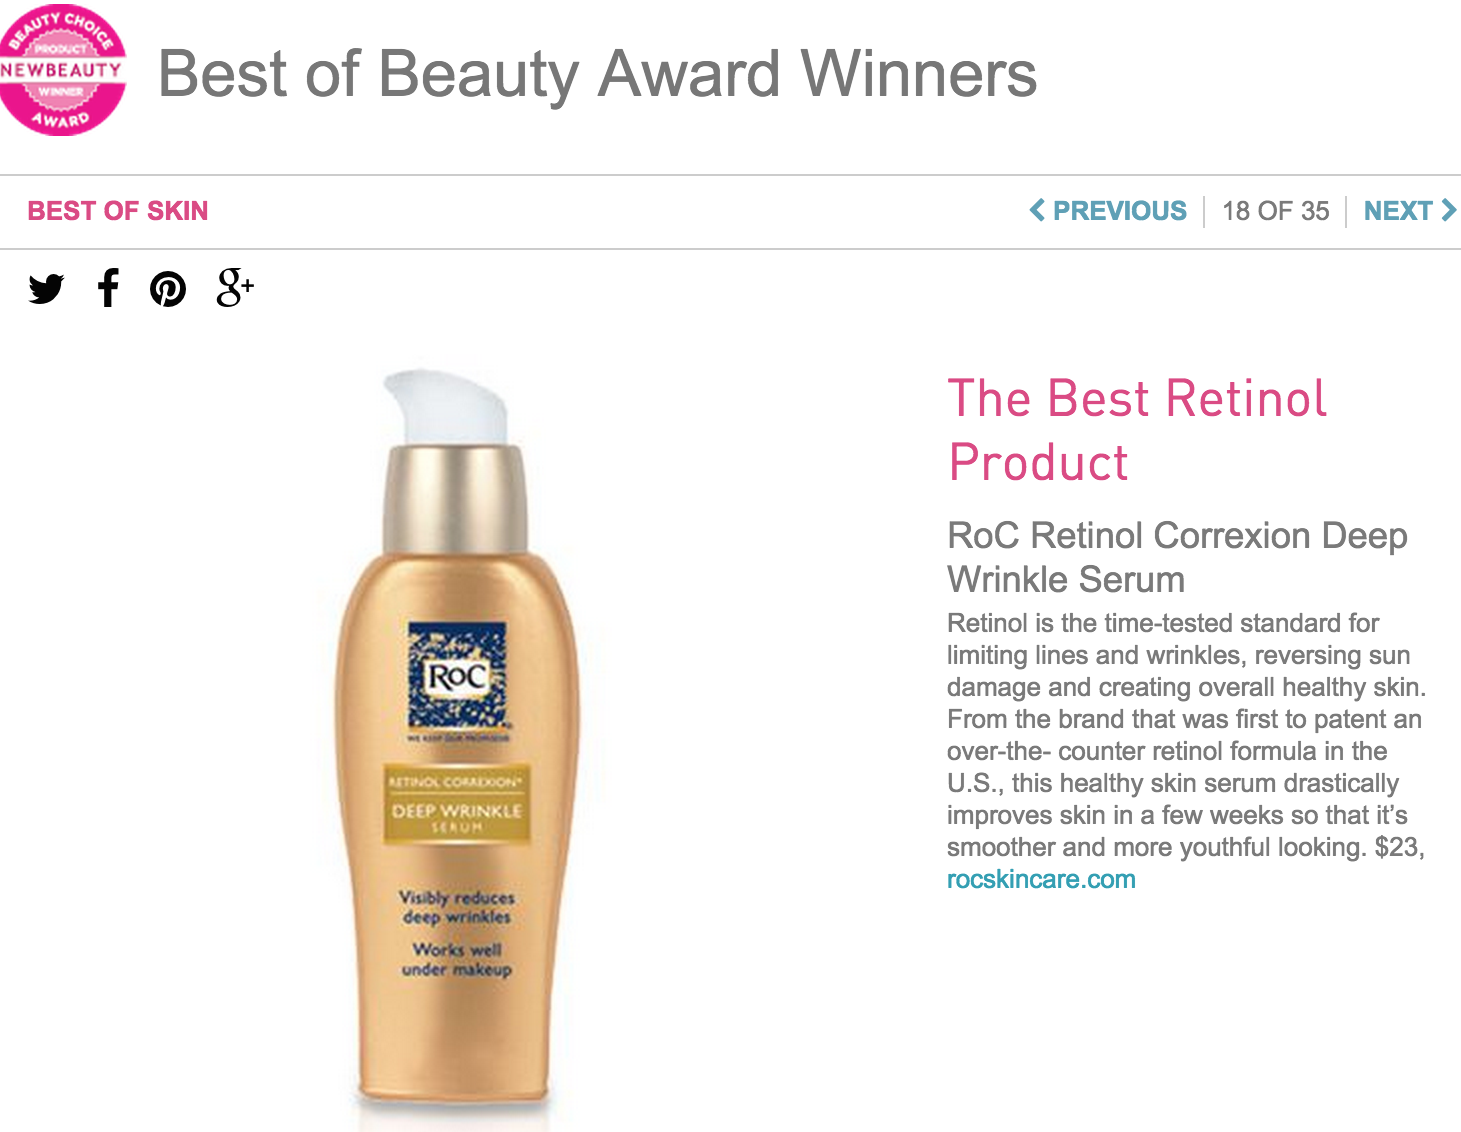 RoC Retinol Deep Wrinkle Serum